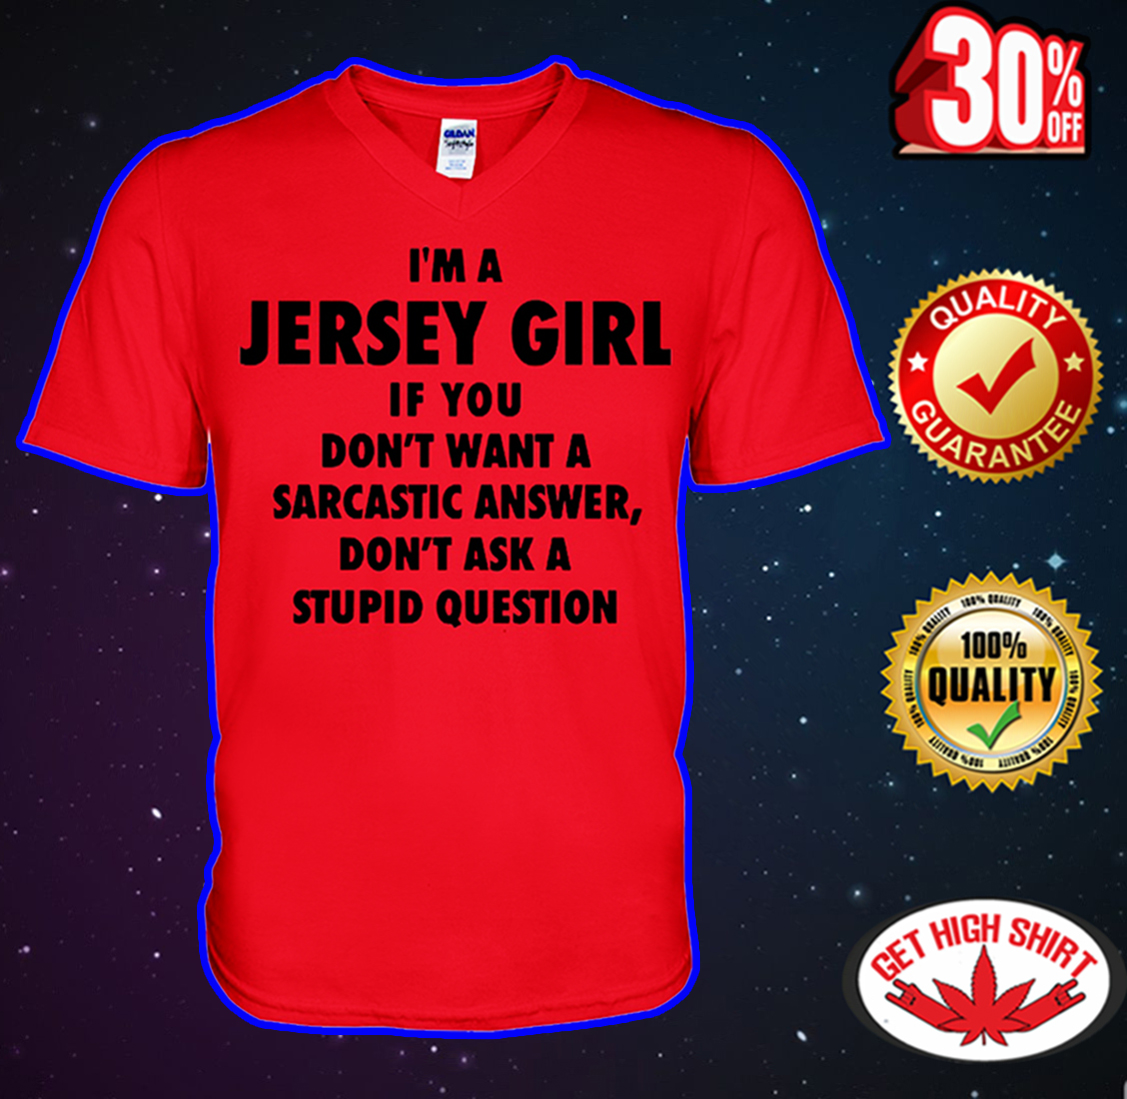 I'm A Jersey Girl If You Don't Want A Sarcastic Answer Don't Ask A Stupid Question v-neck